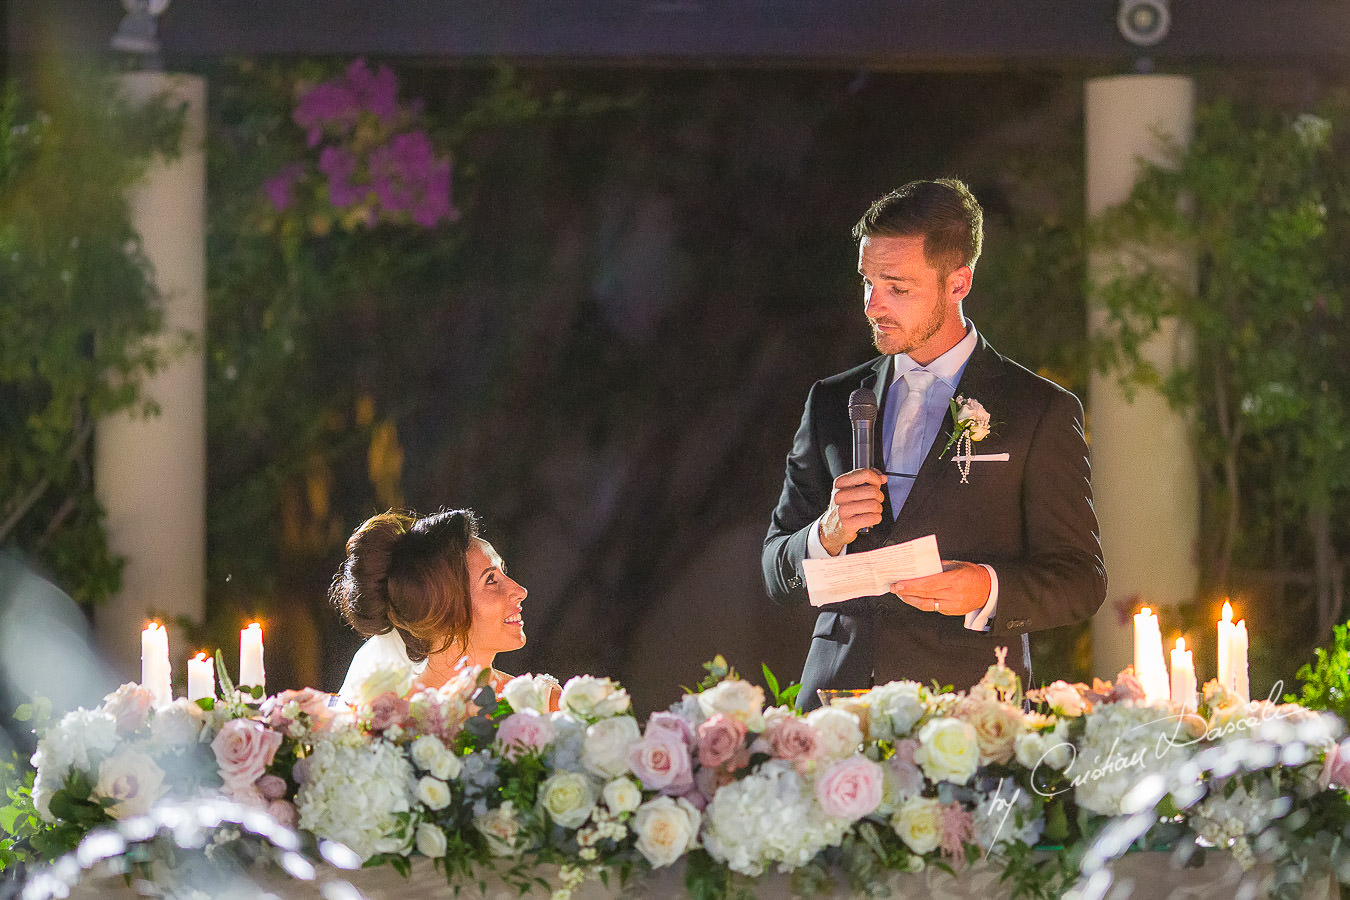 Groom's speech moments captured by Cristian Dascalu during an elegant Aphrodite Hills Wedding in Cyprus.